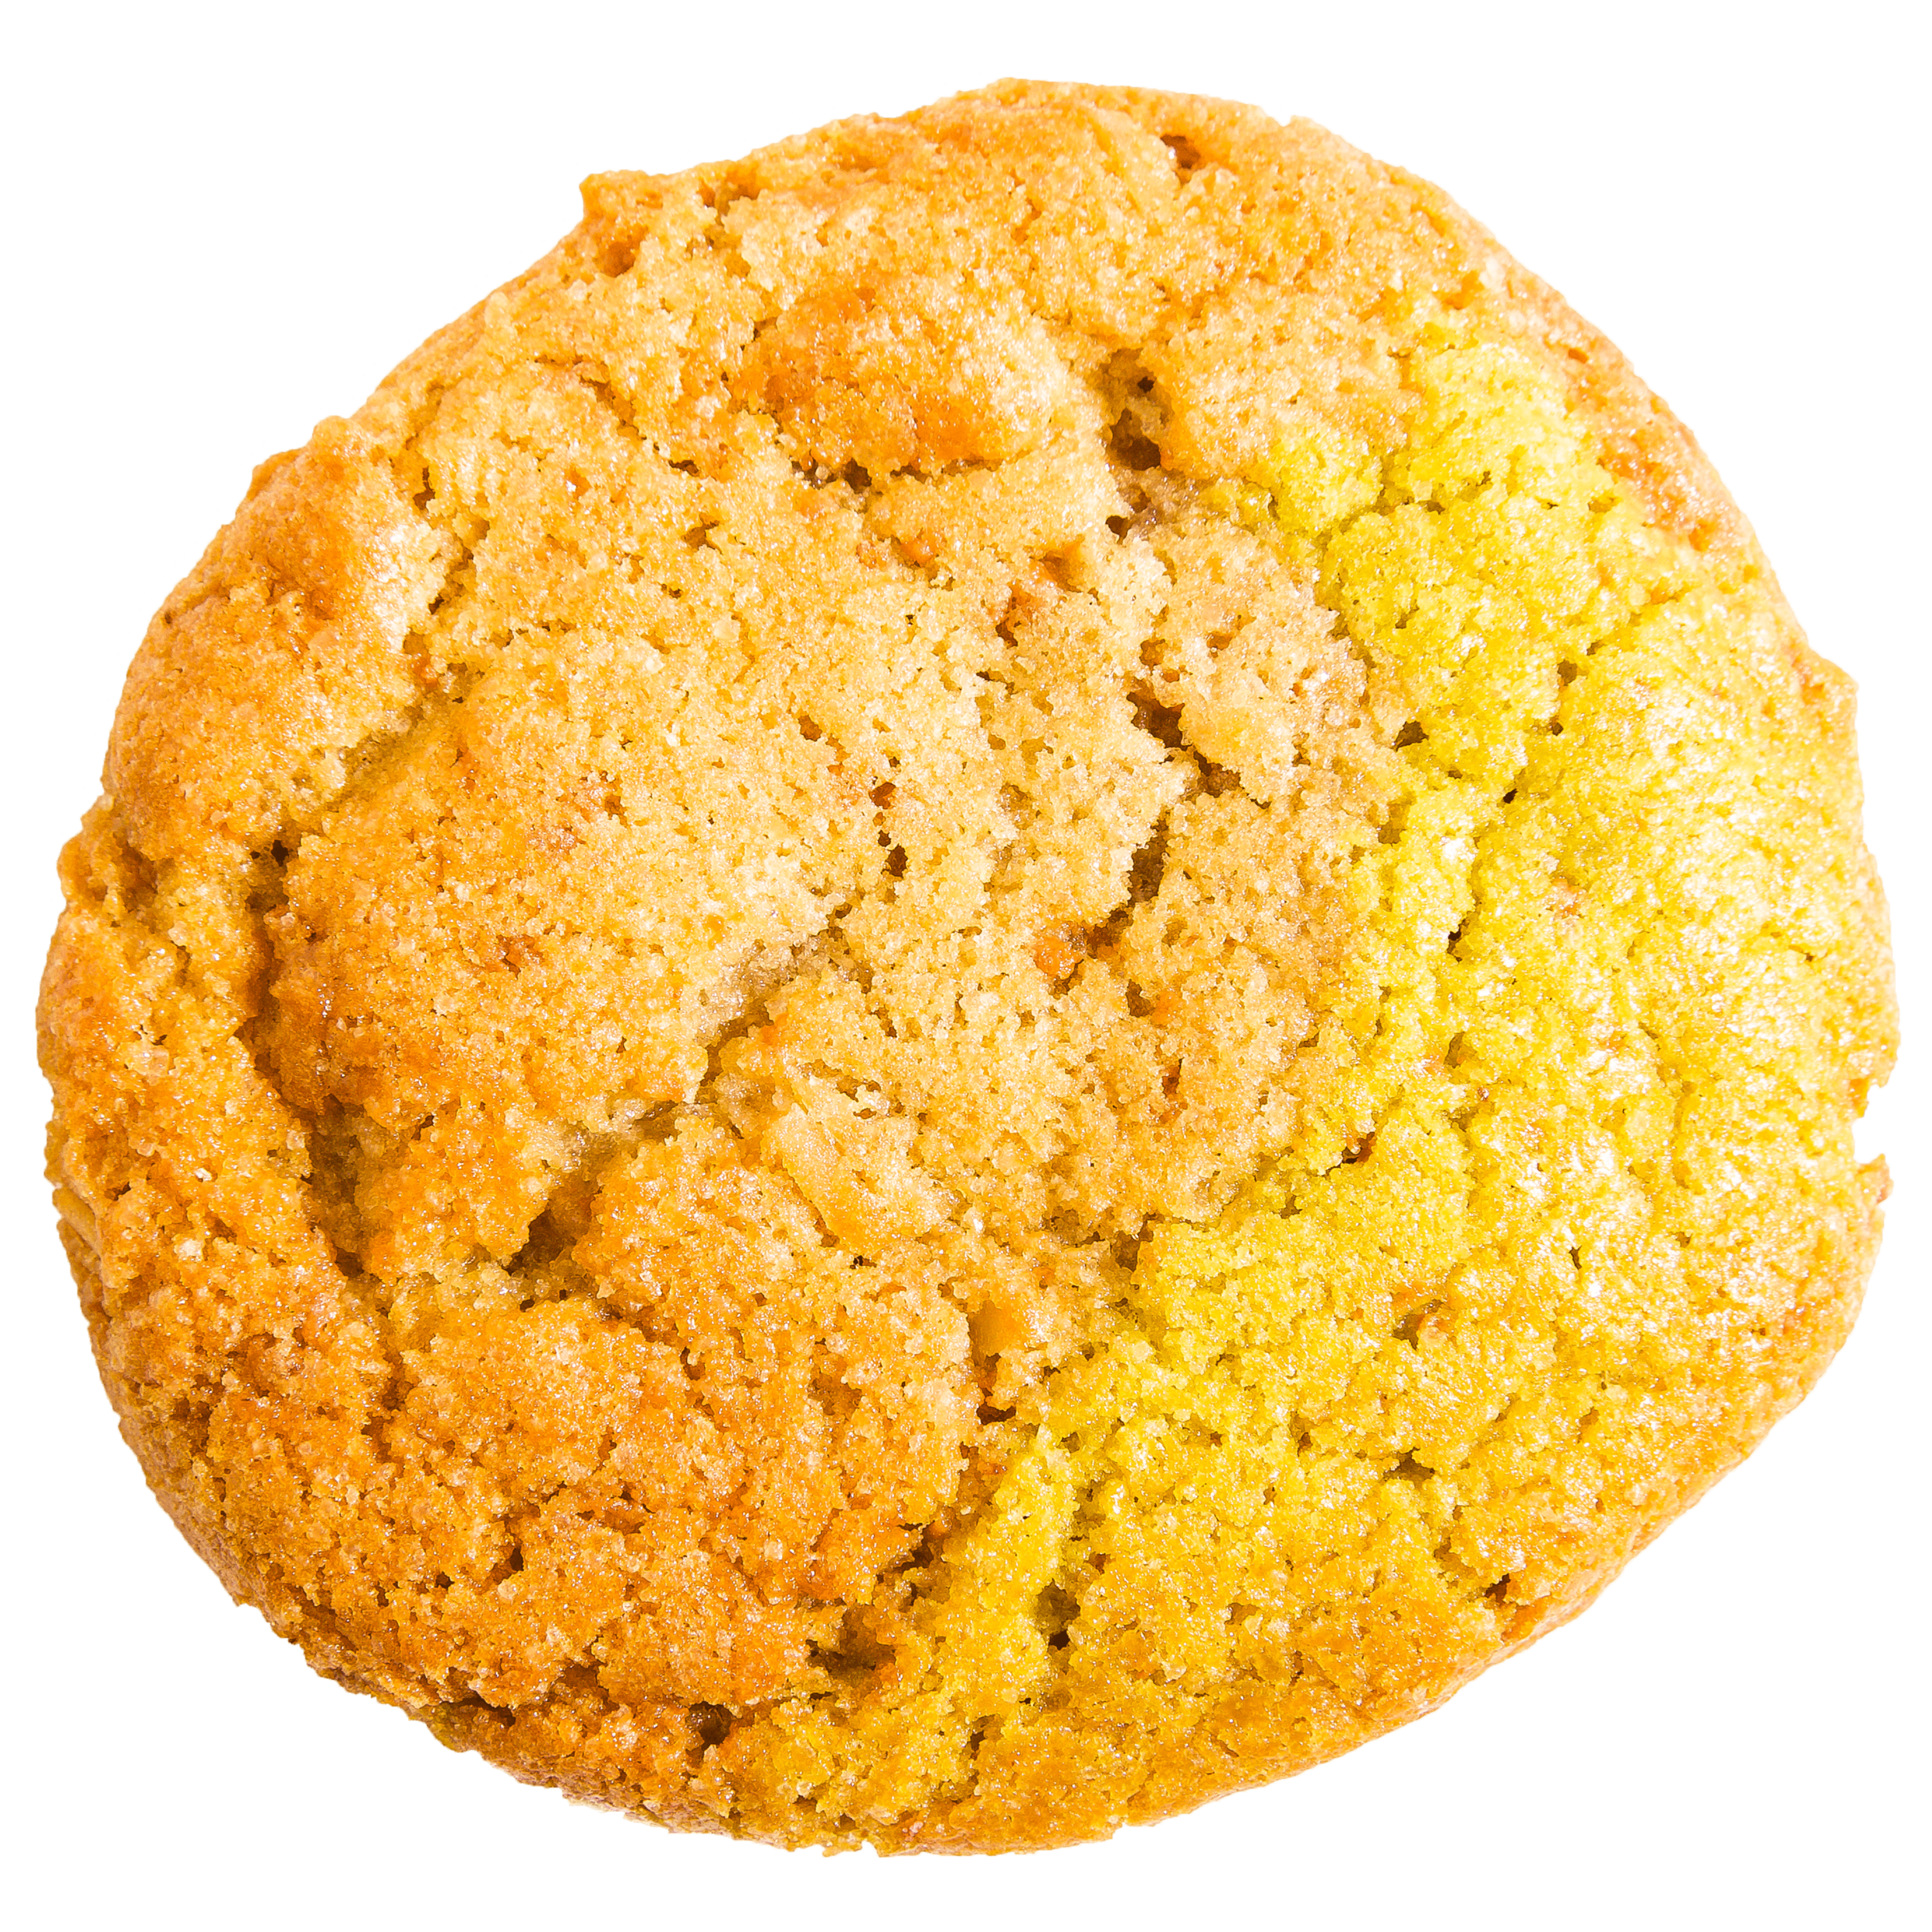 Cookie flavor 4 transparent.png